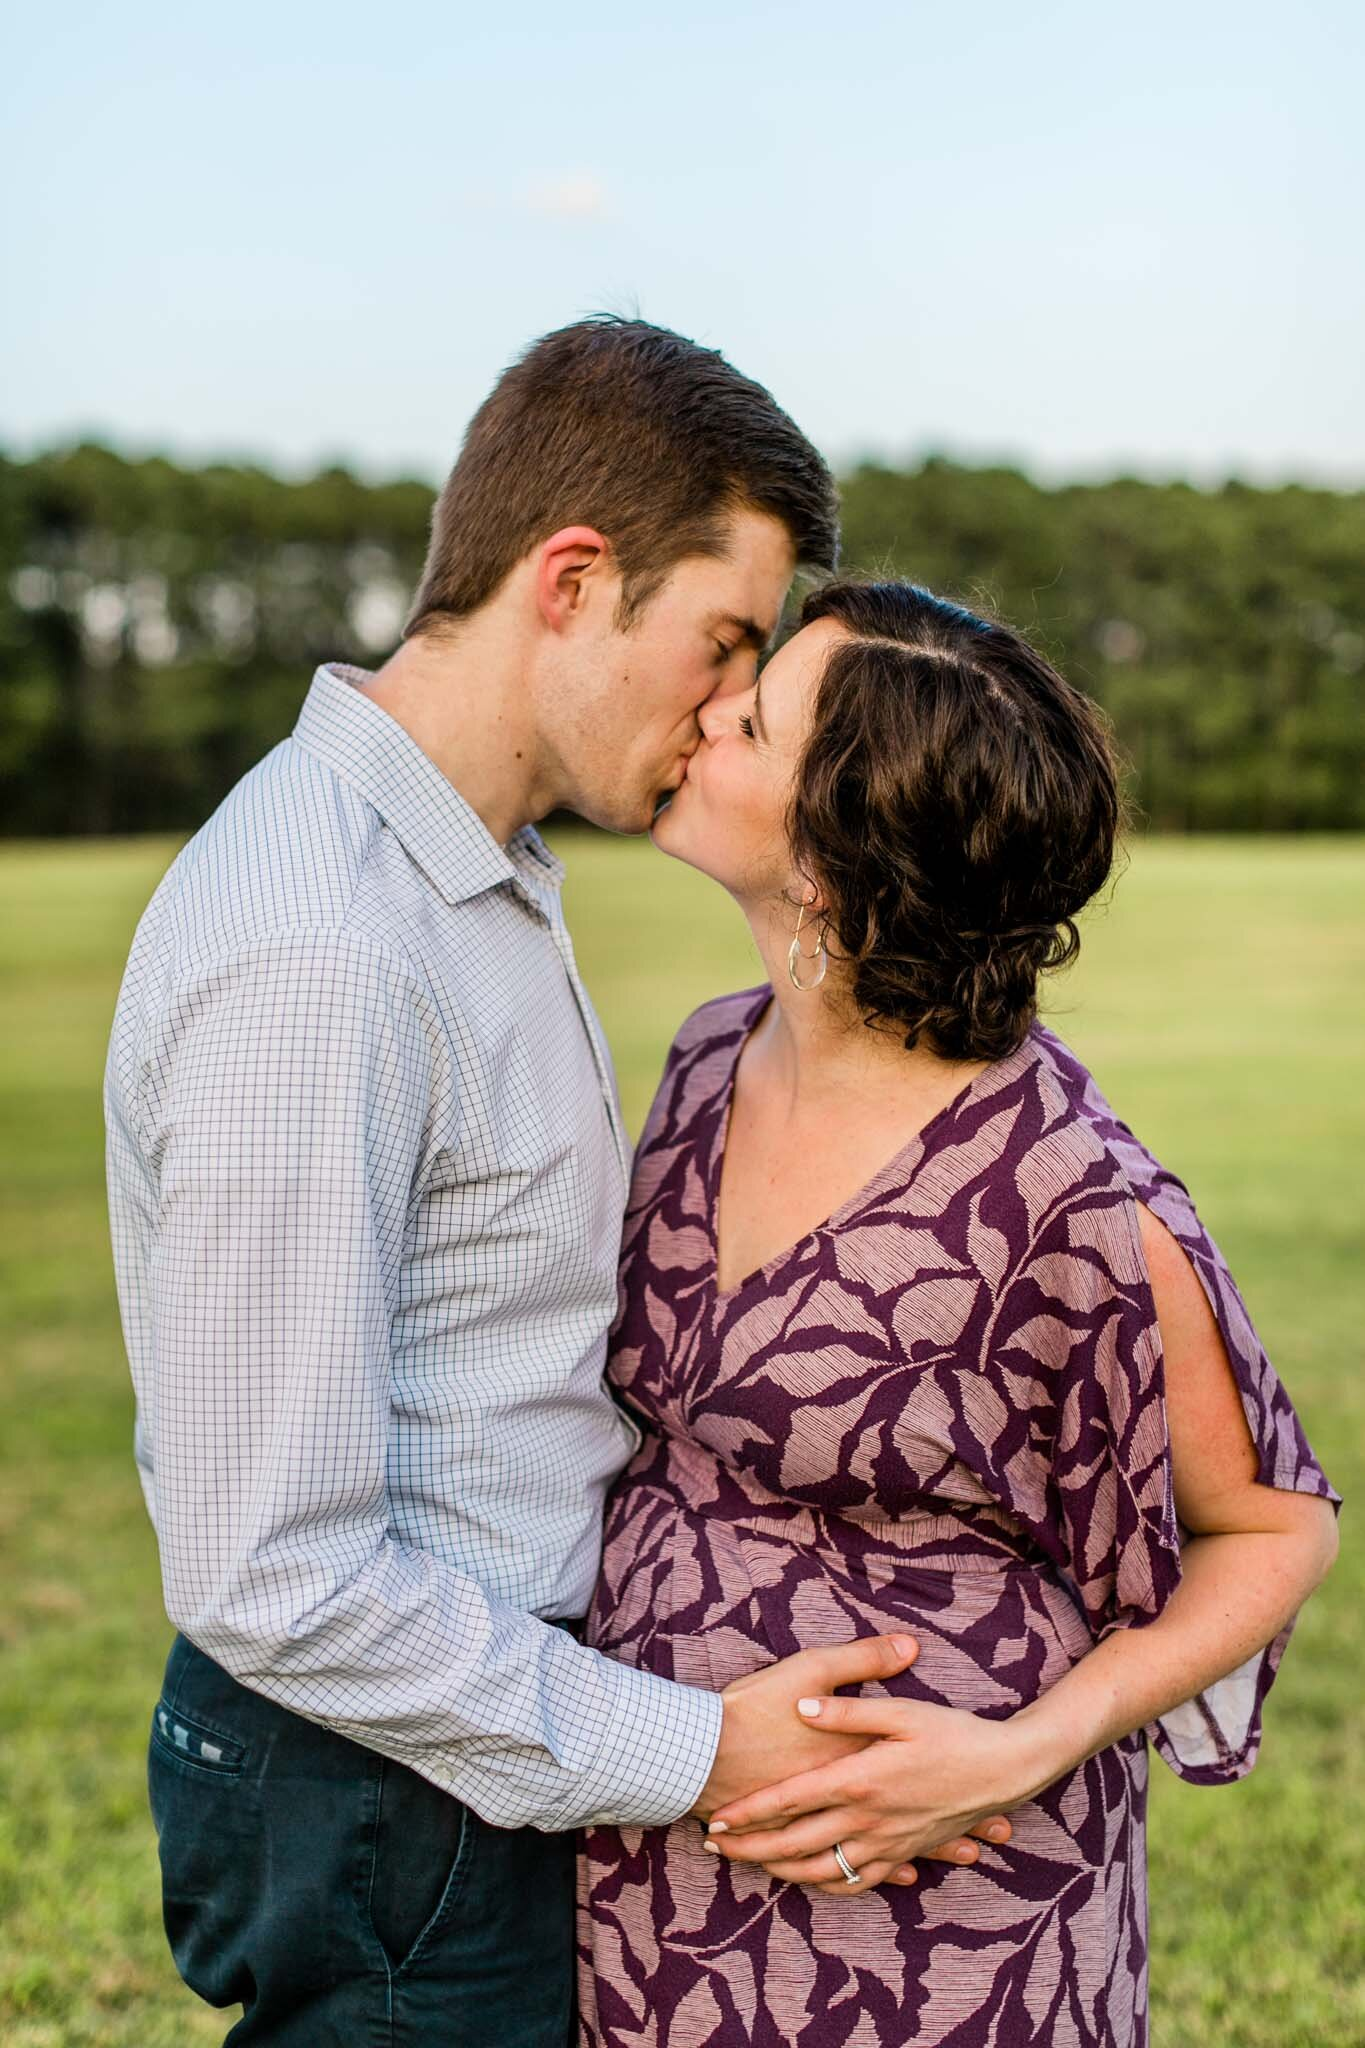 Raleigh Family Photographer | By G. Lin Photography | Couple kissing in open field at Dix Park